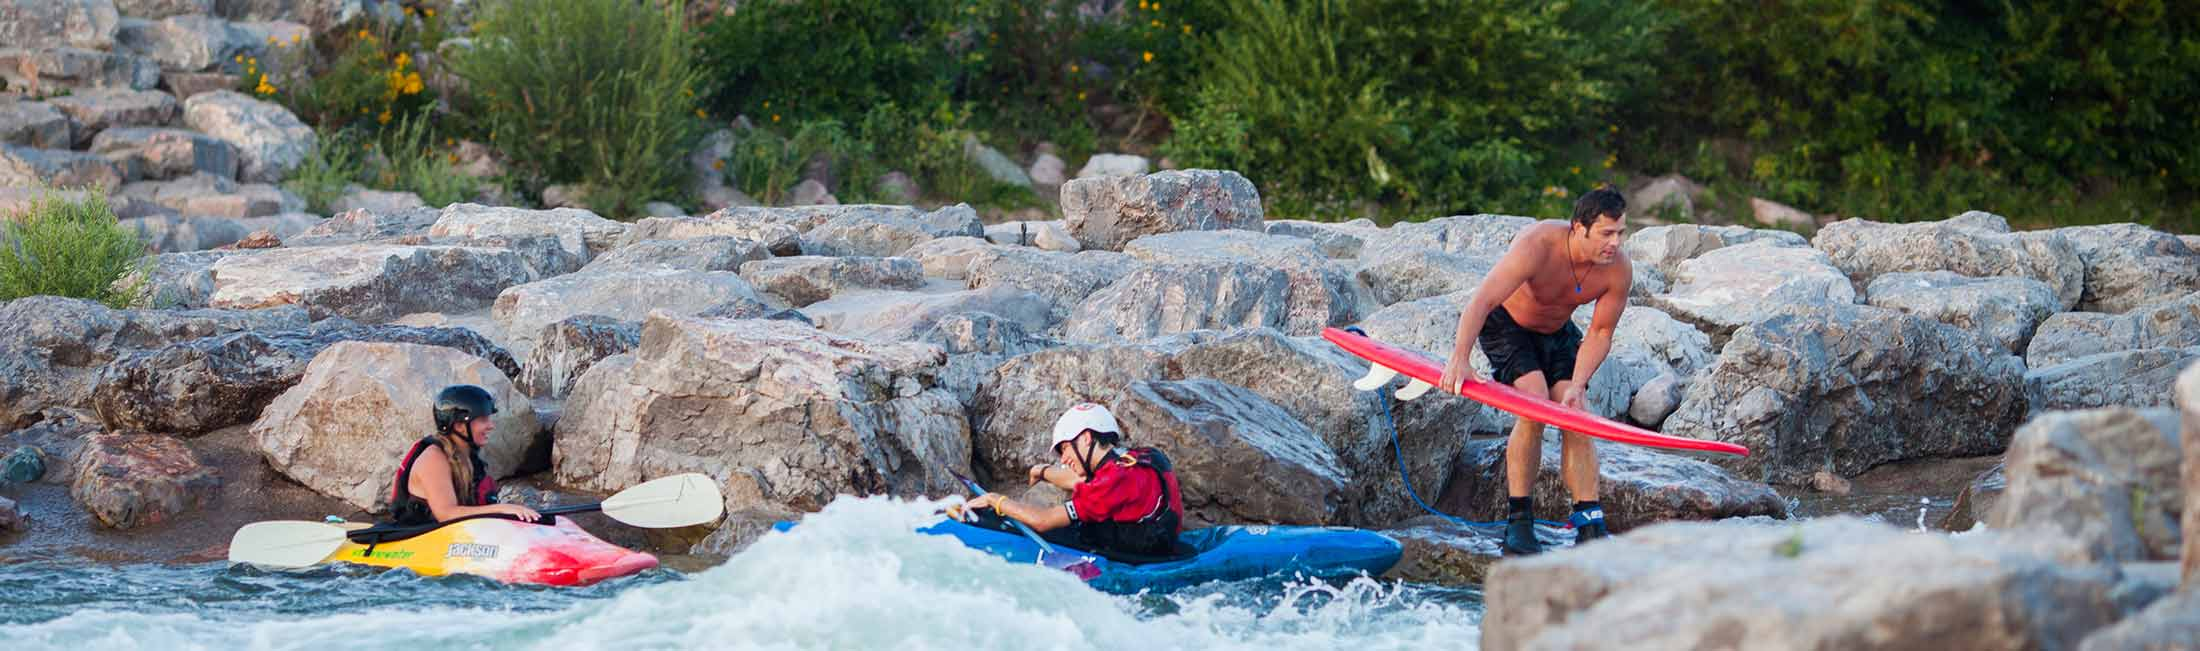 Water Activities in Missoula, Montana